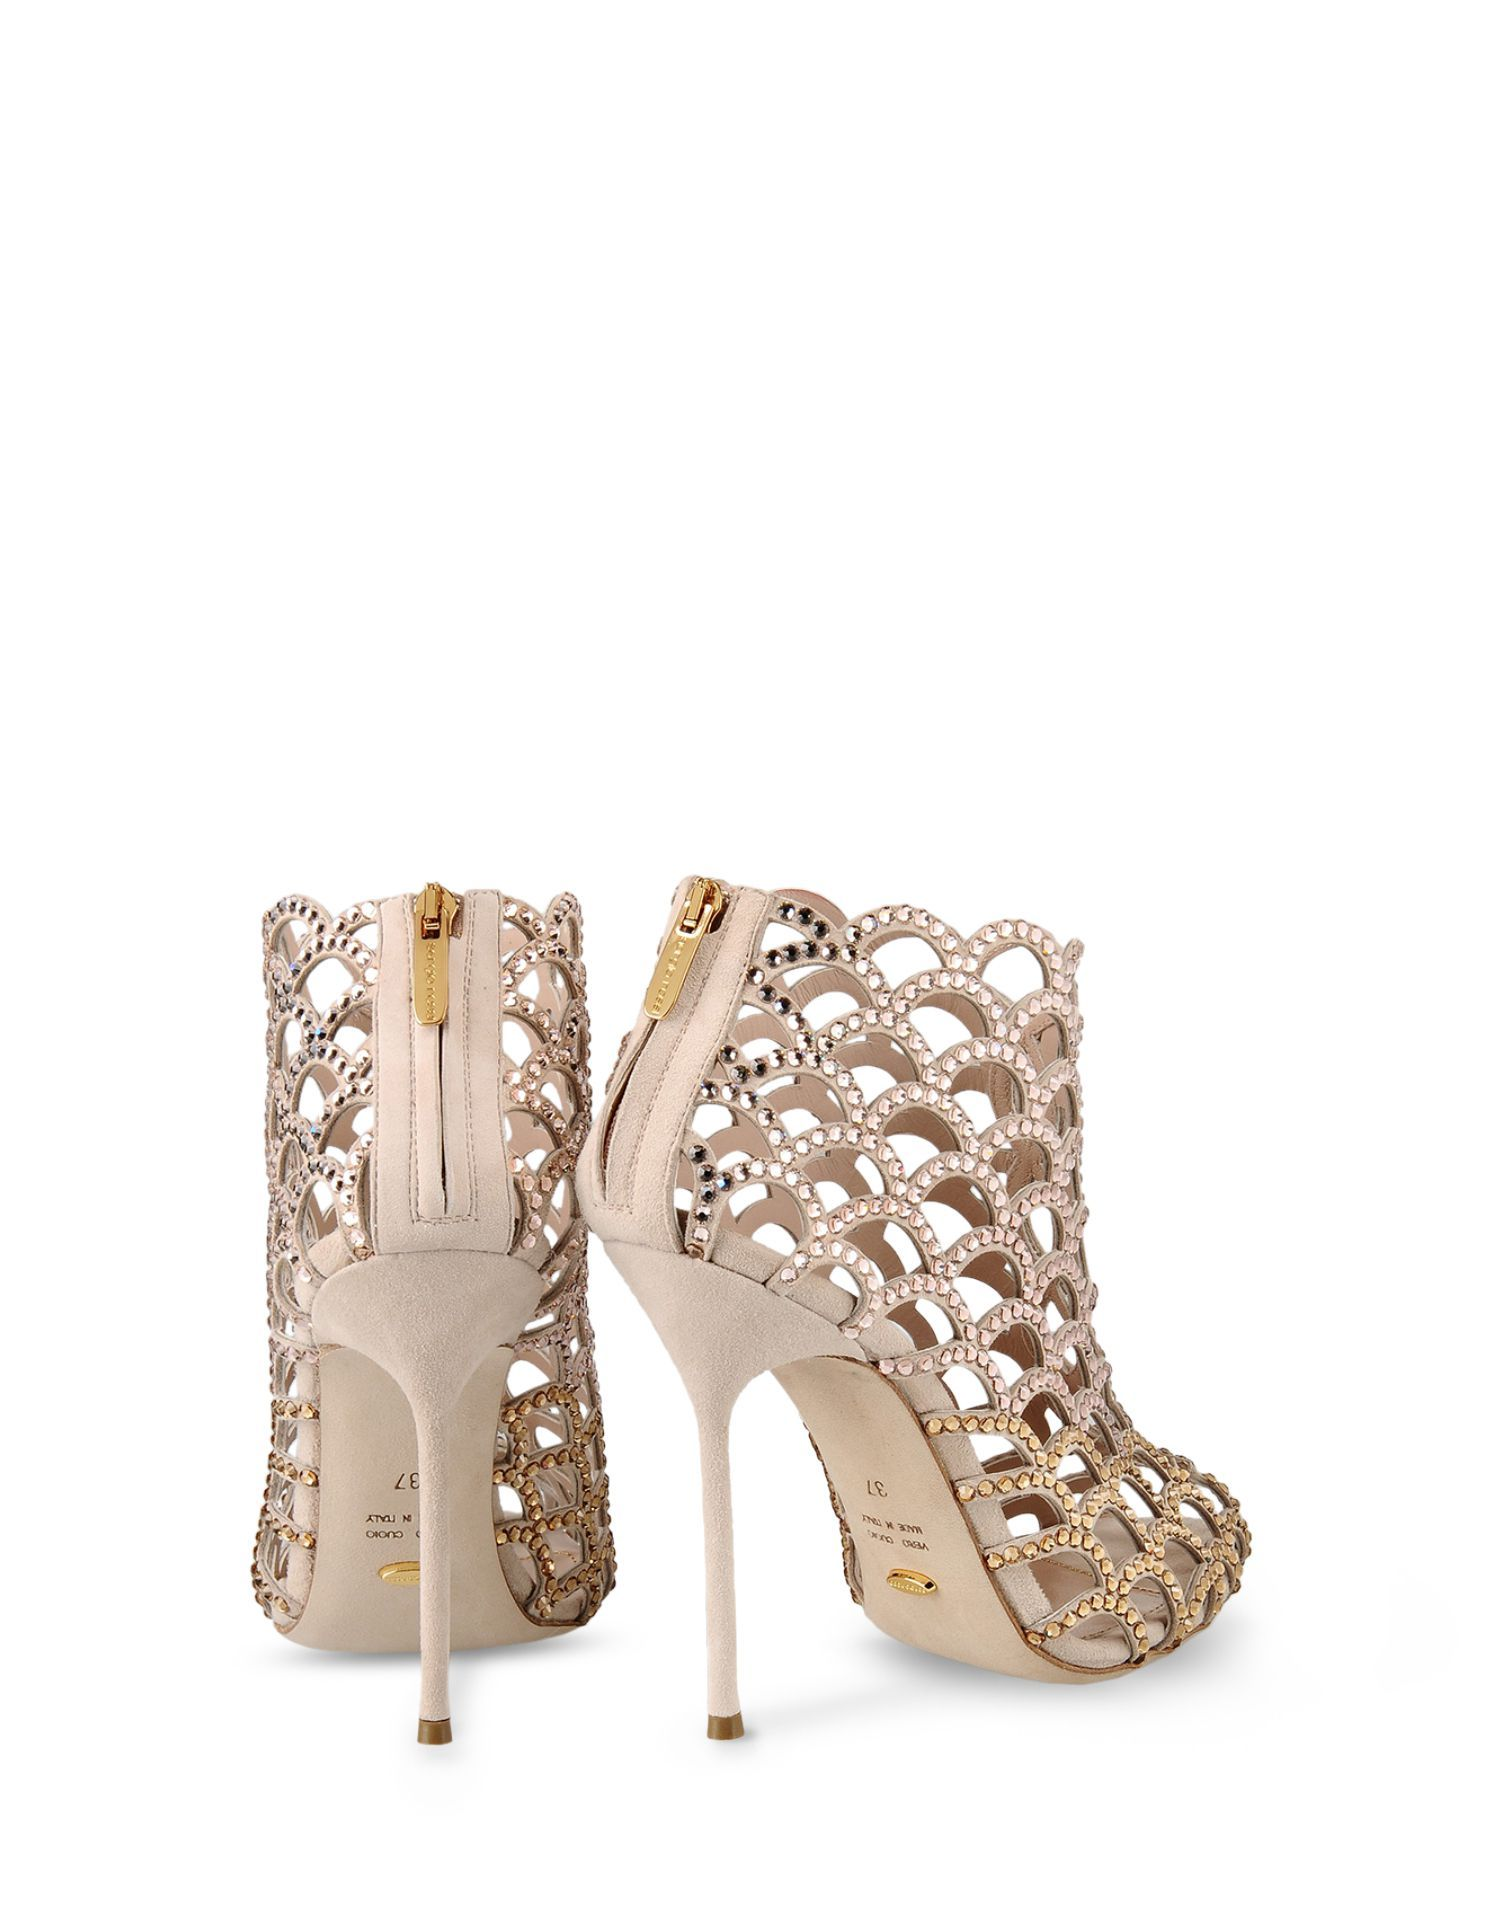 b79ff321ecc Luxurious and Gorgeous Sergio Rossi Shoes - Be Modish - Be Modish